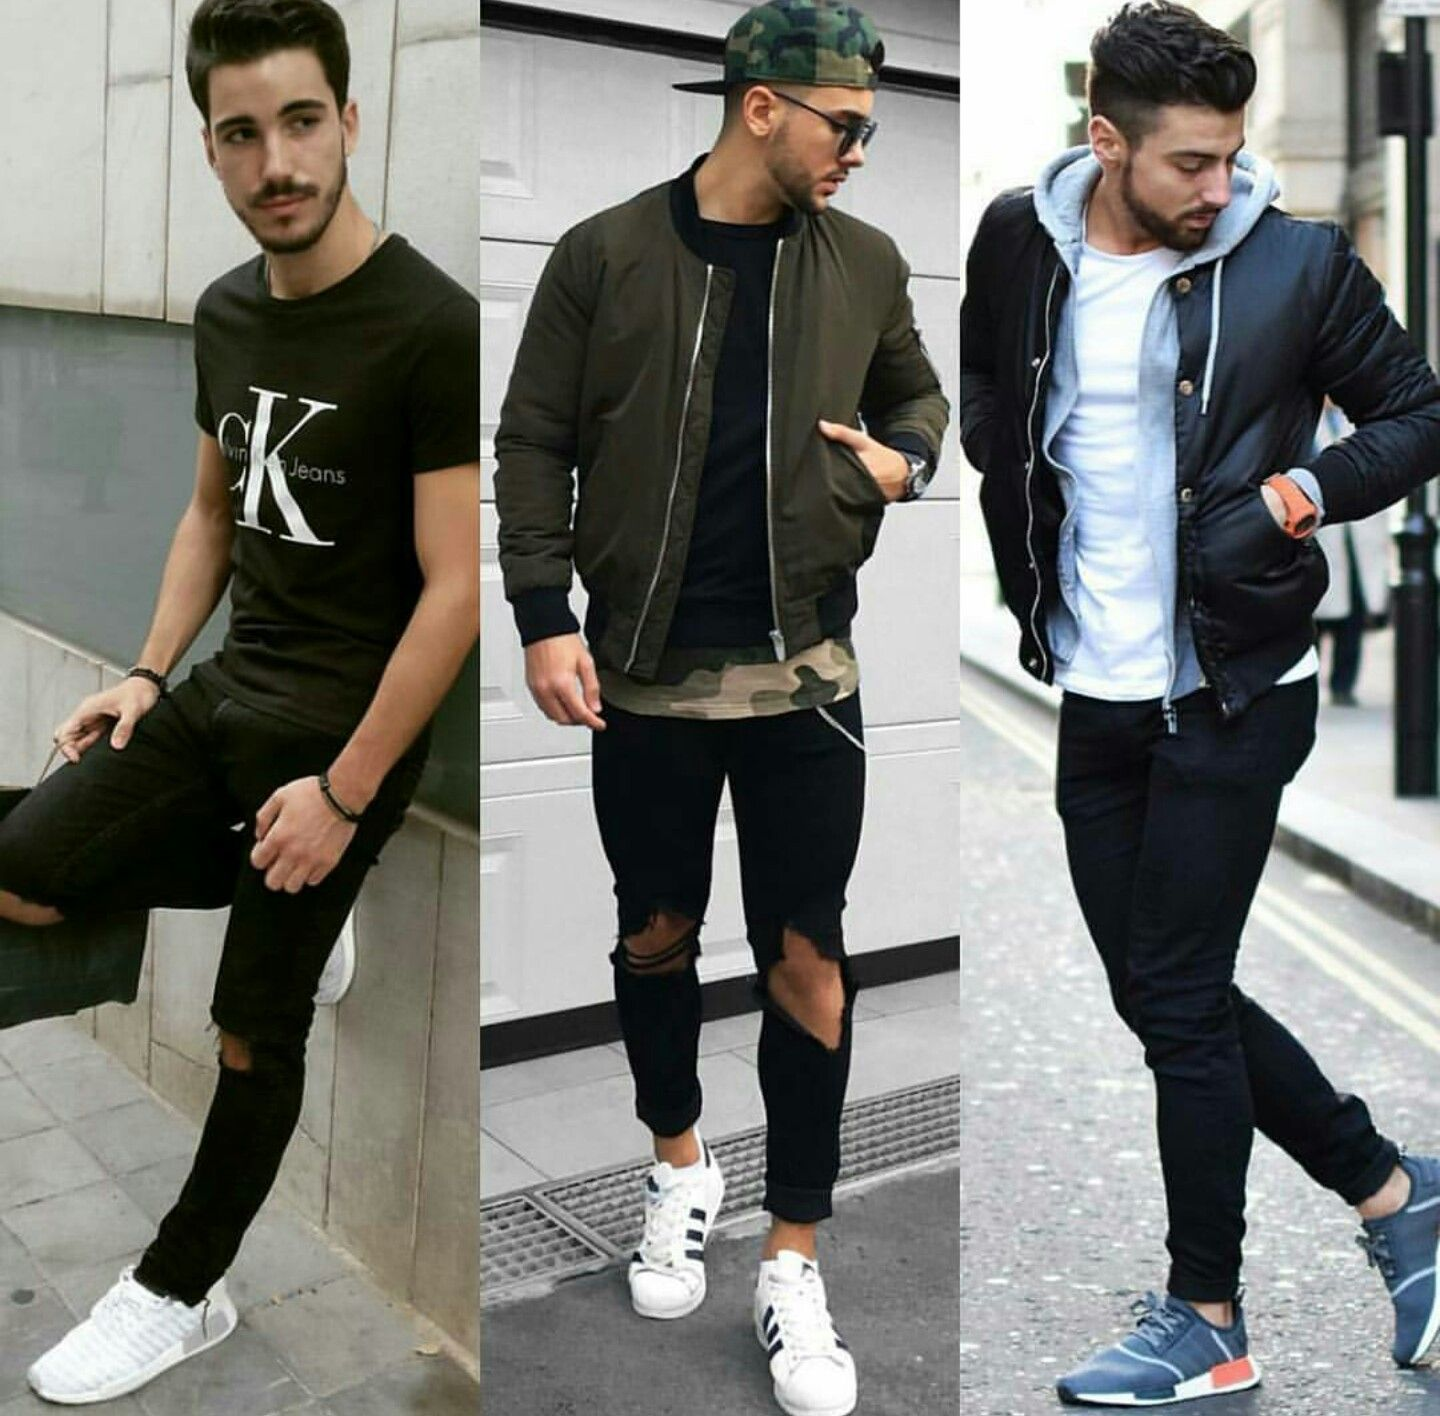 Pin en Men outfit style (formal and non formal)